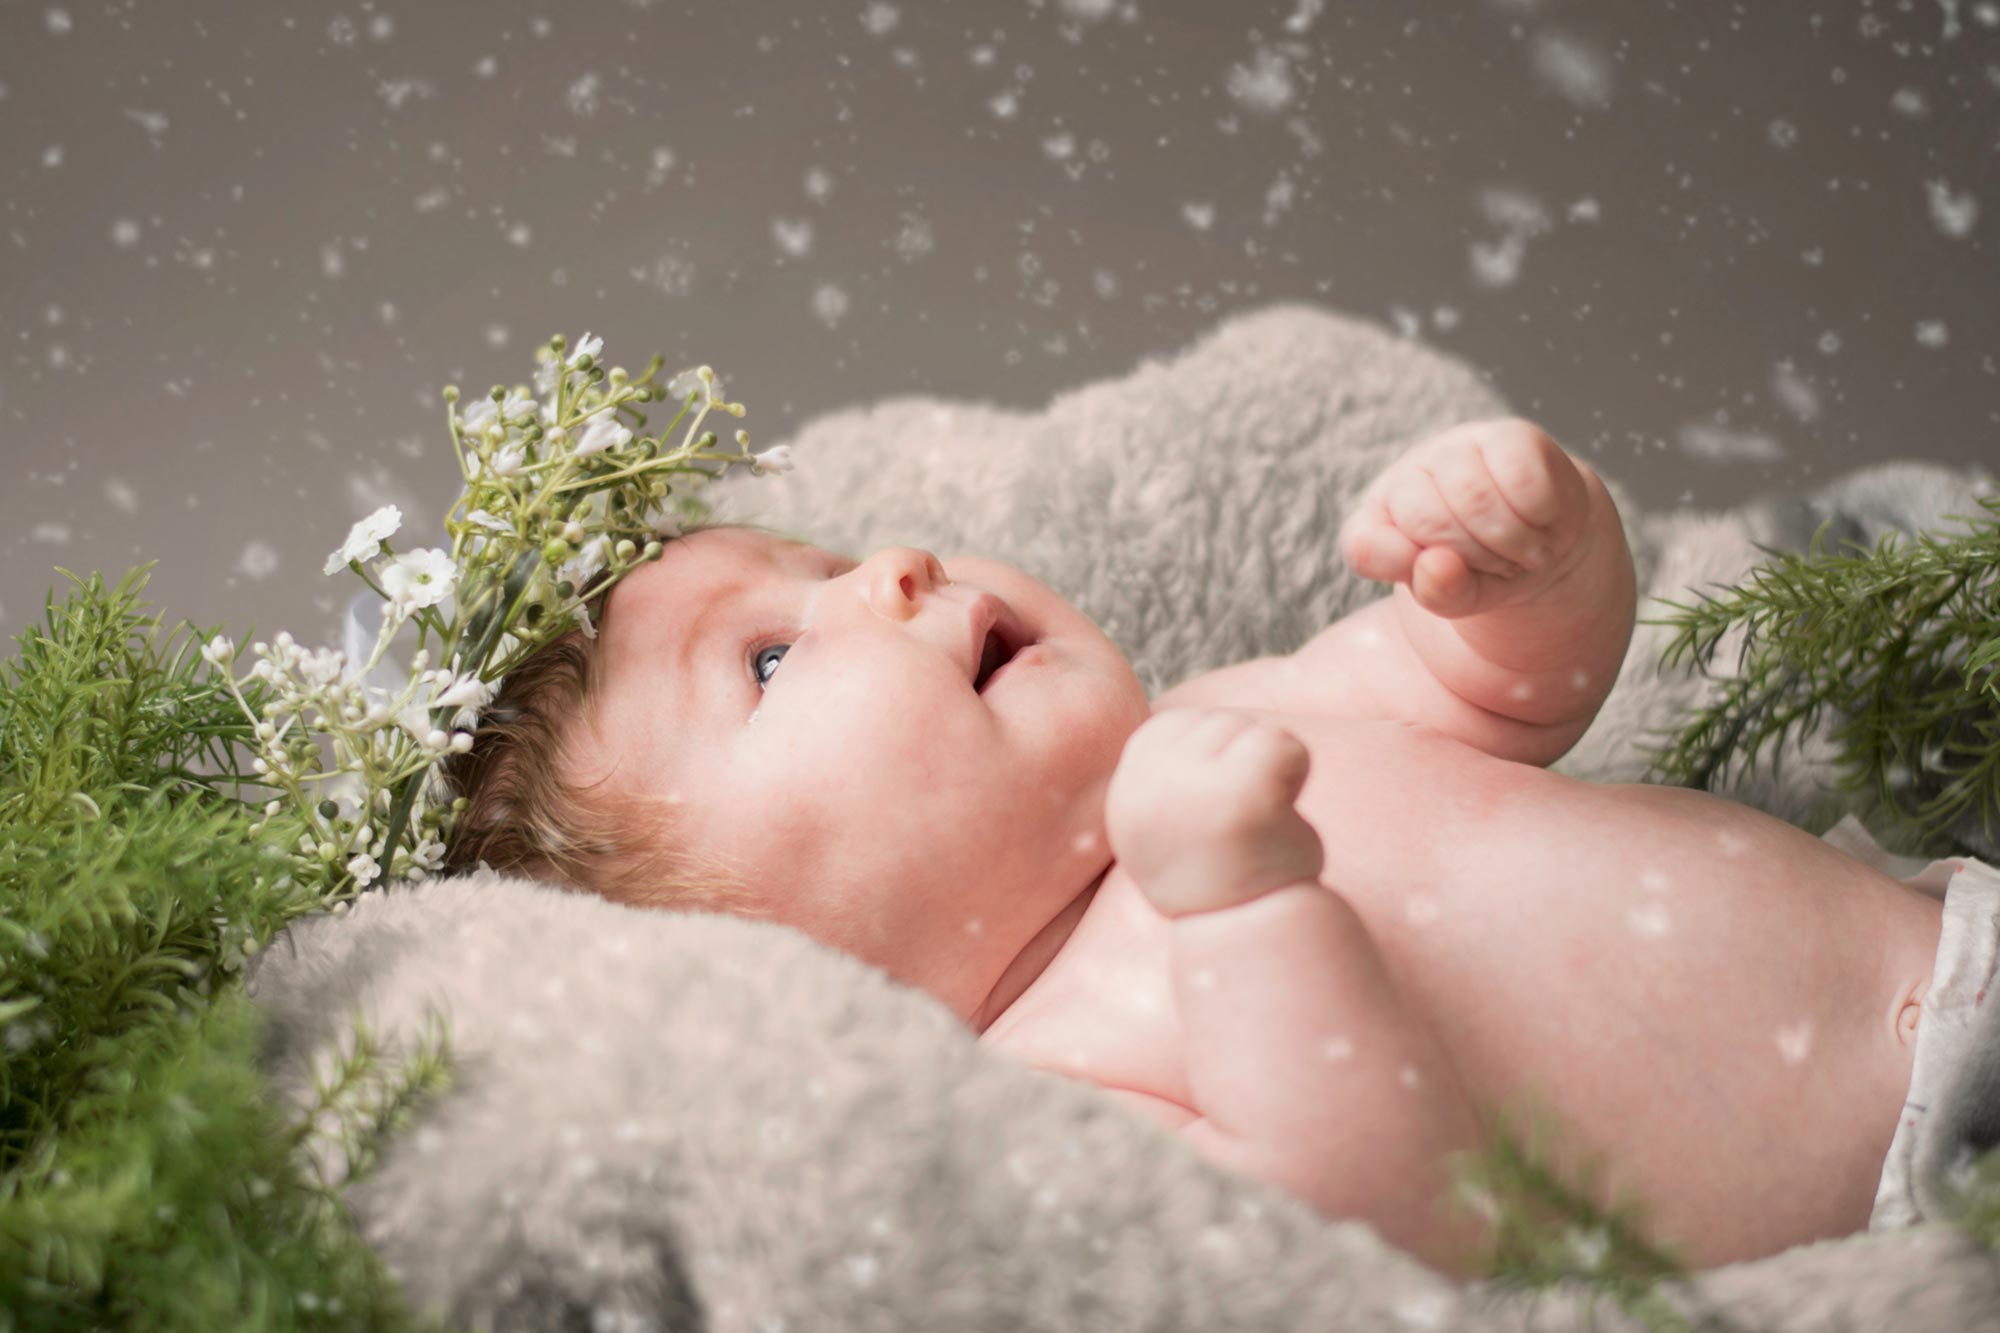 Baby looking up in wonder at new snowfall